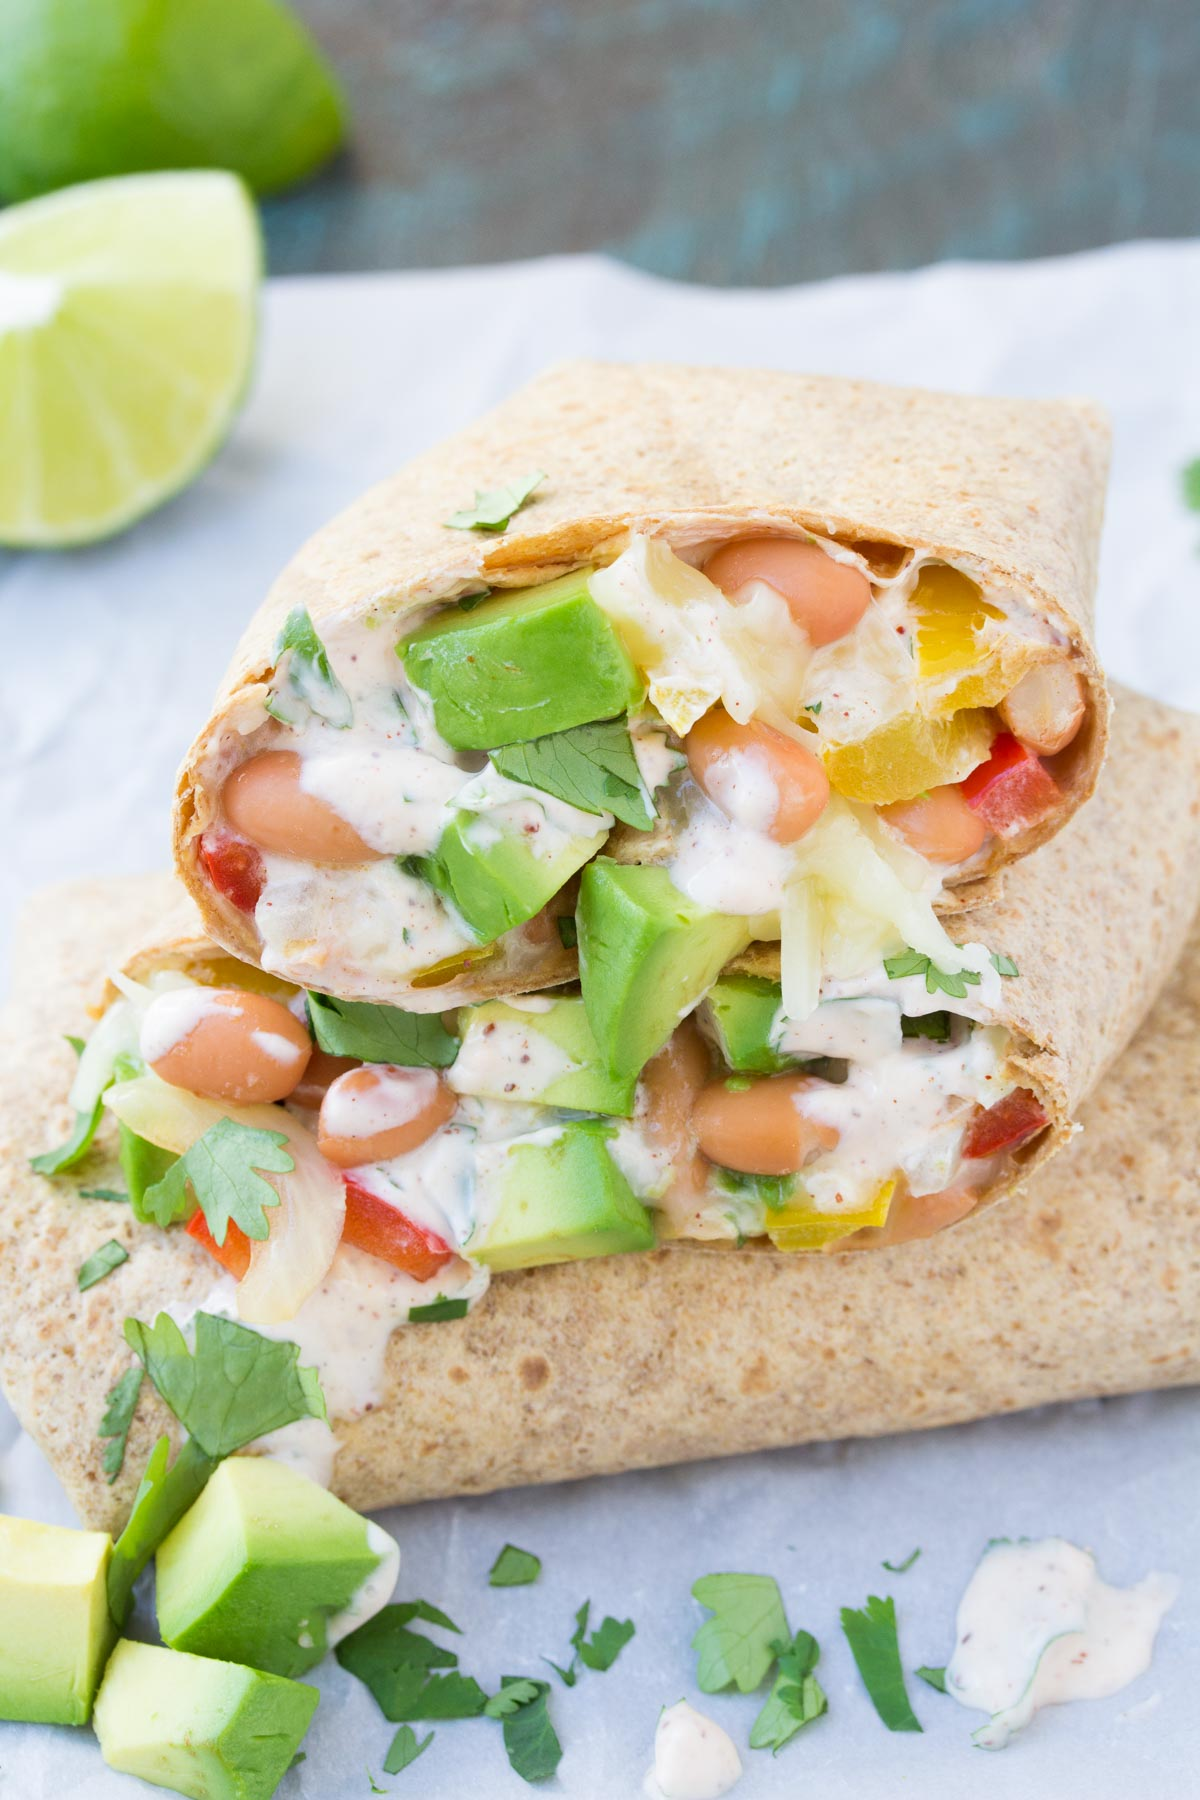 These Creamy Avocado Vegetable Burritos are a healthy 30 minute dinner recipe!   www.kristineskitchenblog.com